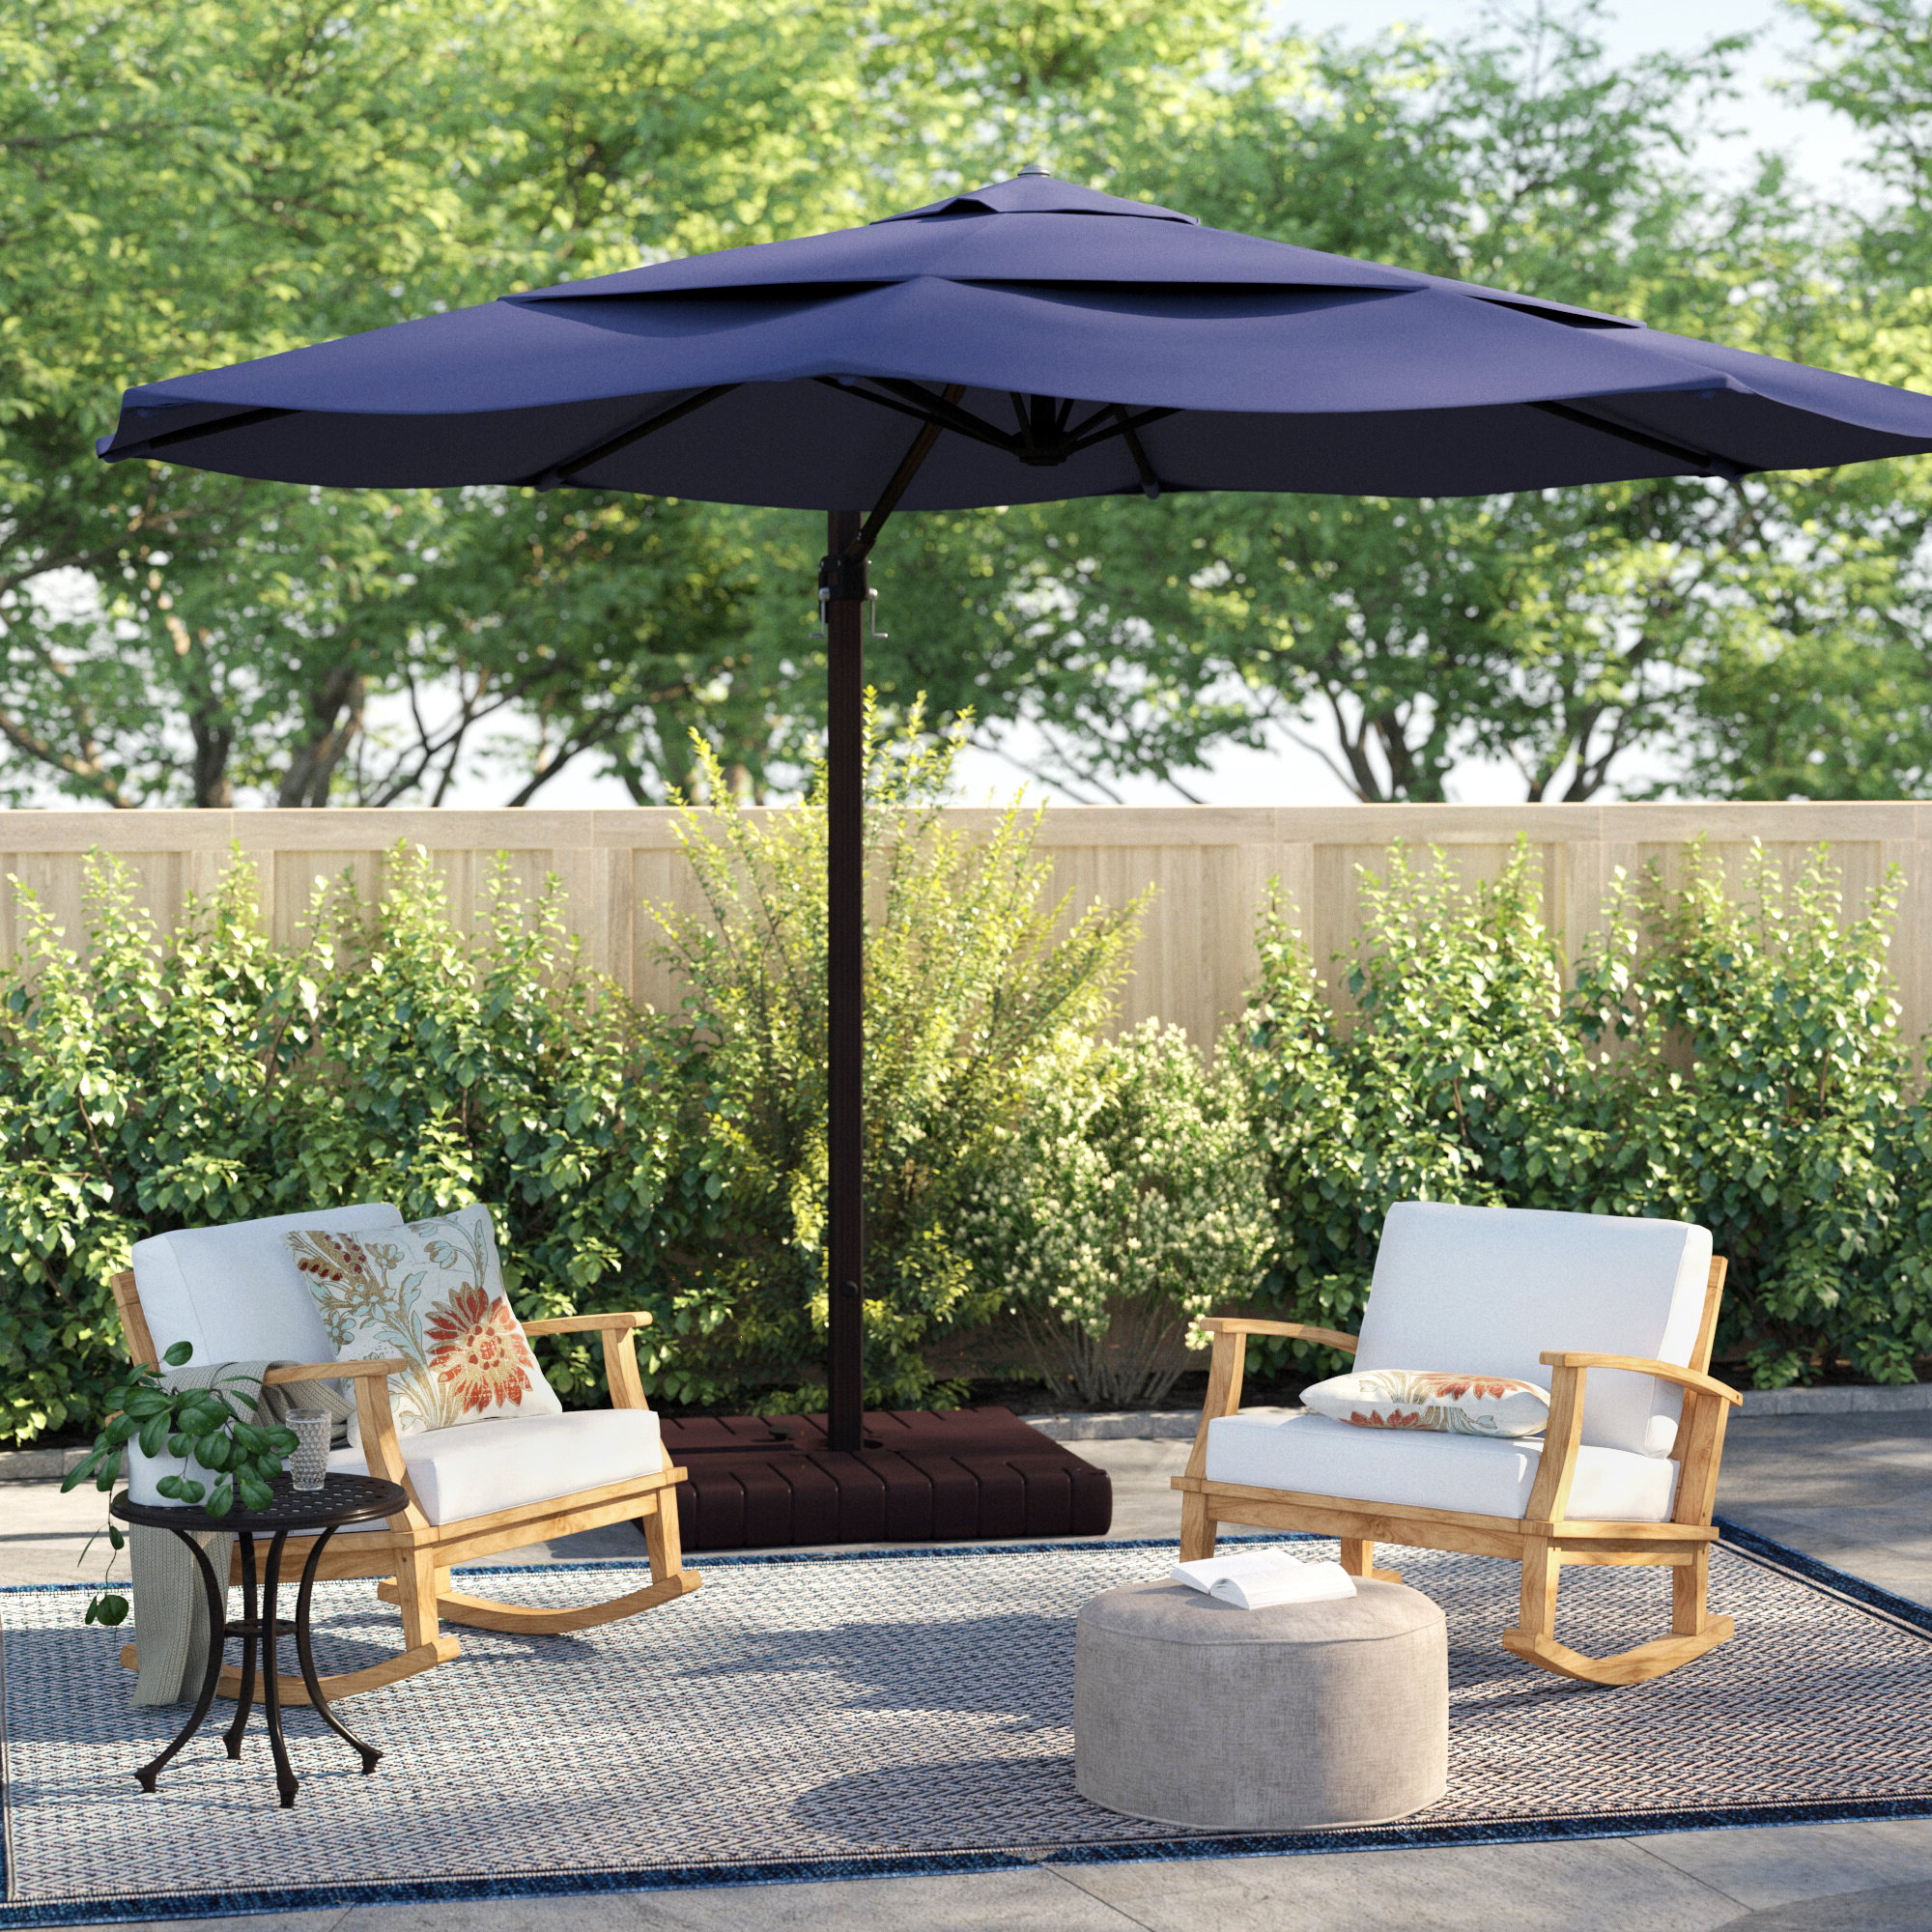 Latest Carlisle 11' Cantilever Sunbrella Umbrella Regarding Carlisle Cantilever Sunbrella Umbrellas (View 14 of 20)